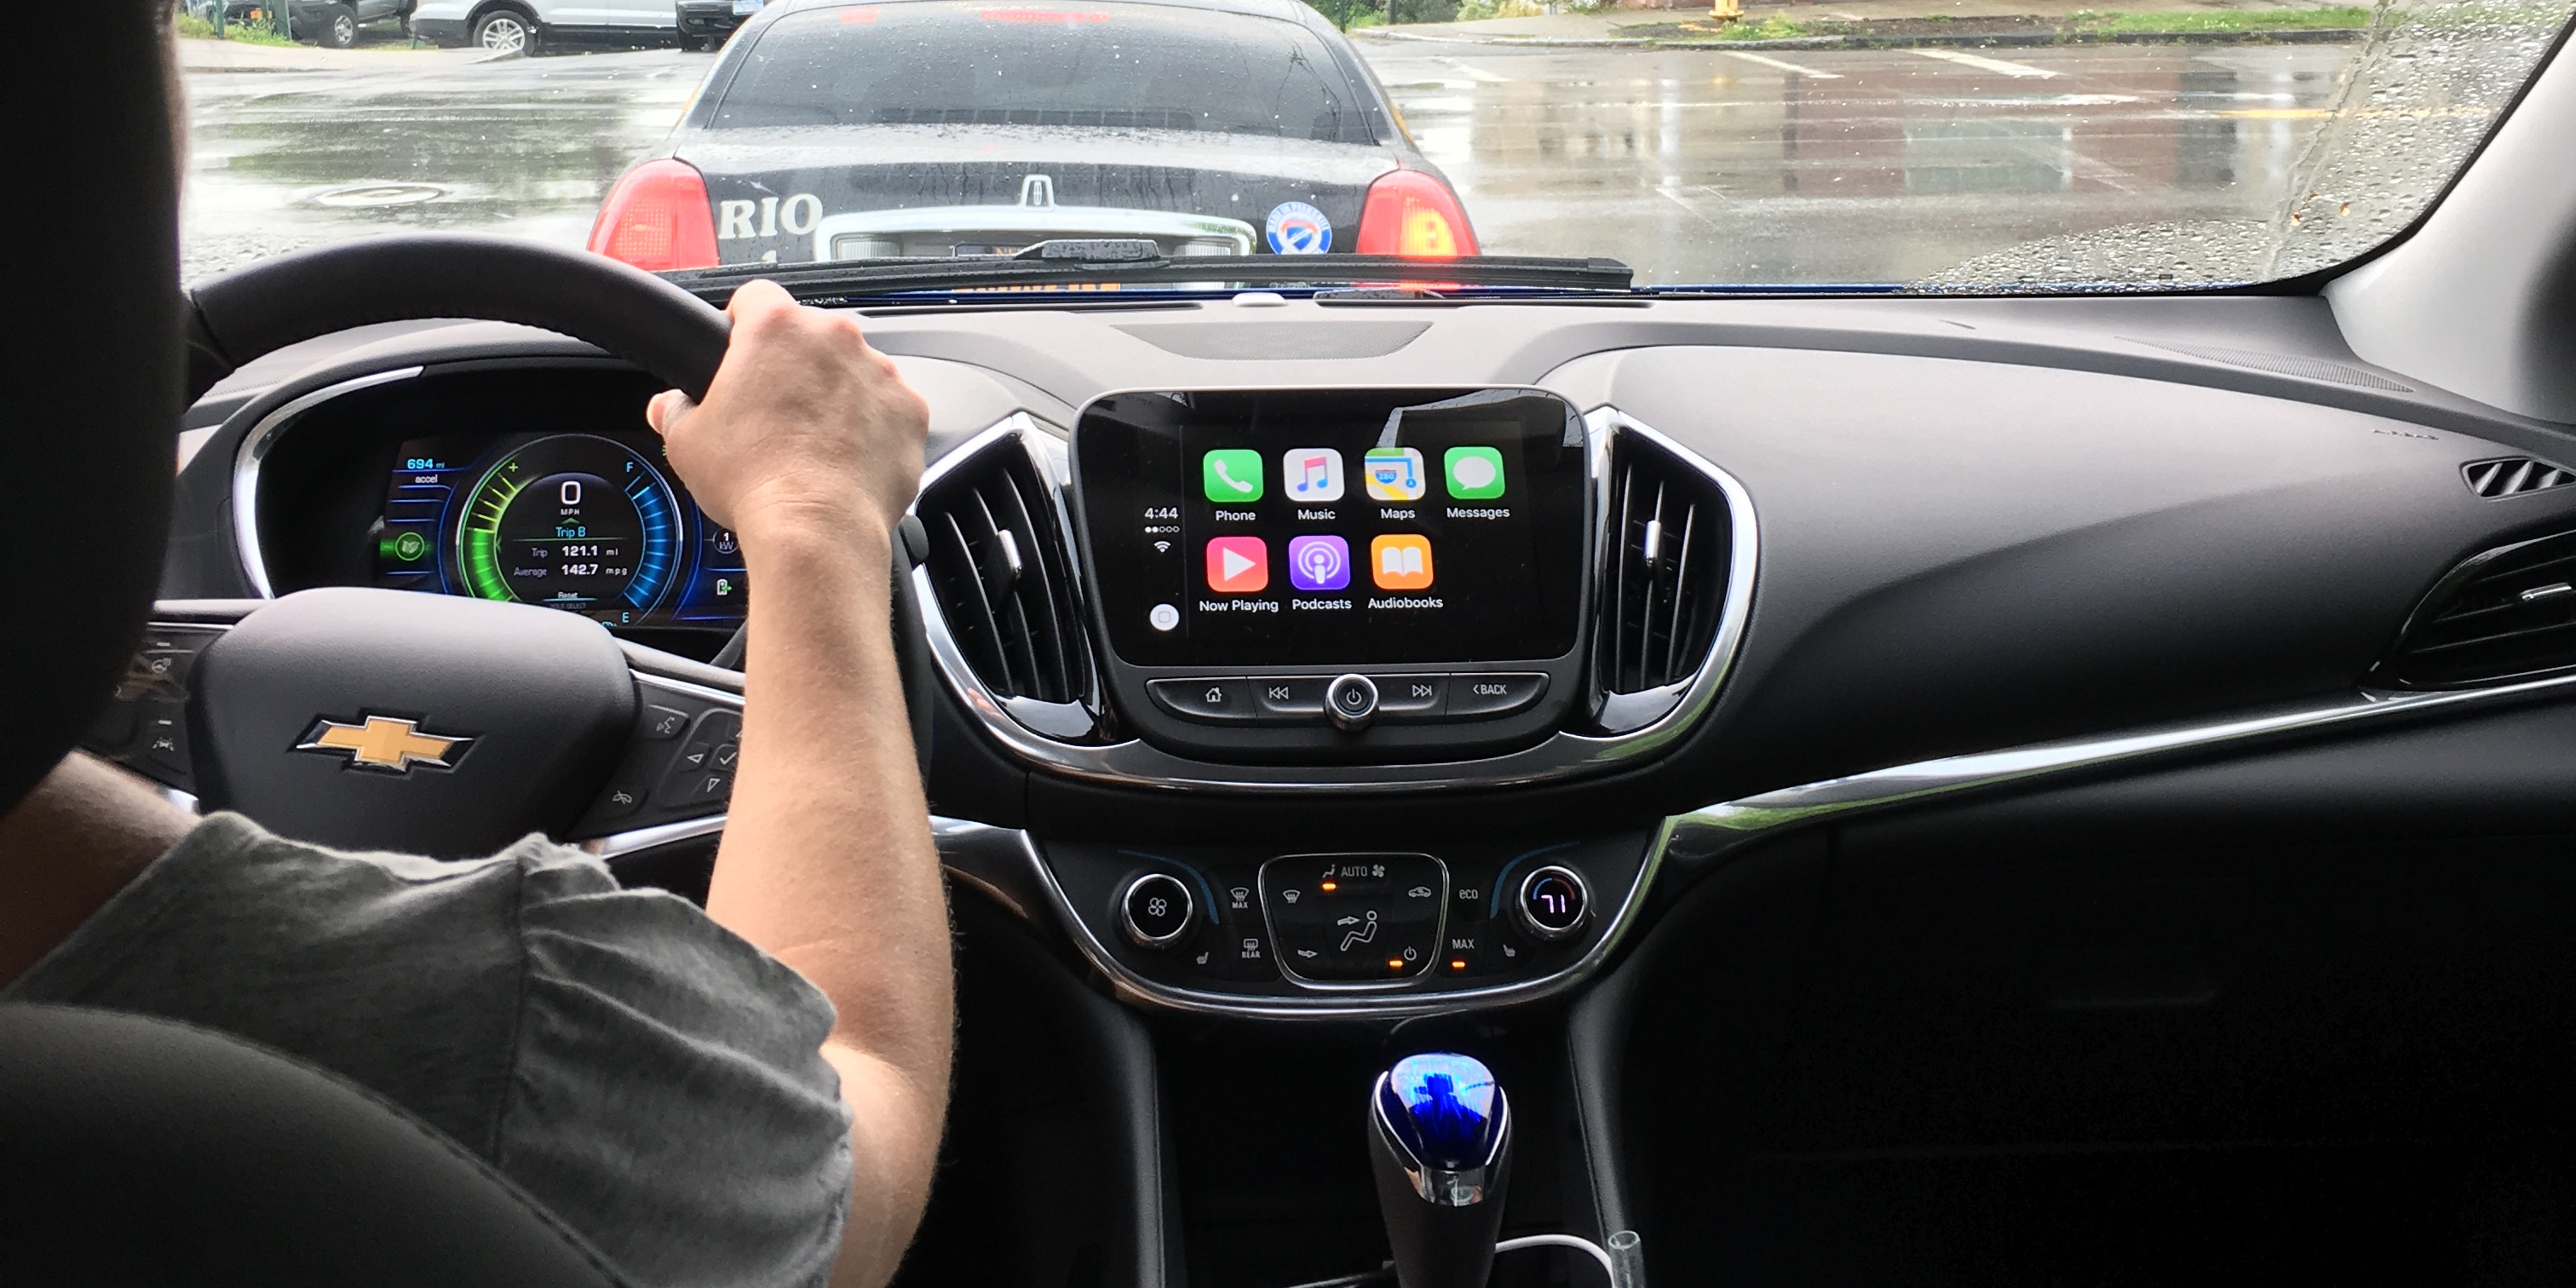 2017 chevy volt review day 3 4 driving in rain, heat, night and2017 chevy volt review day 3 4 driving in rain, heat, night and quicker charging